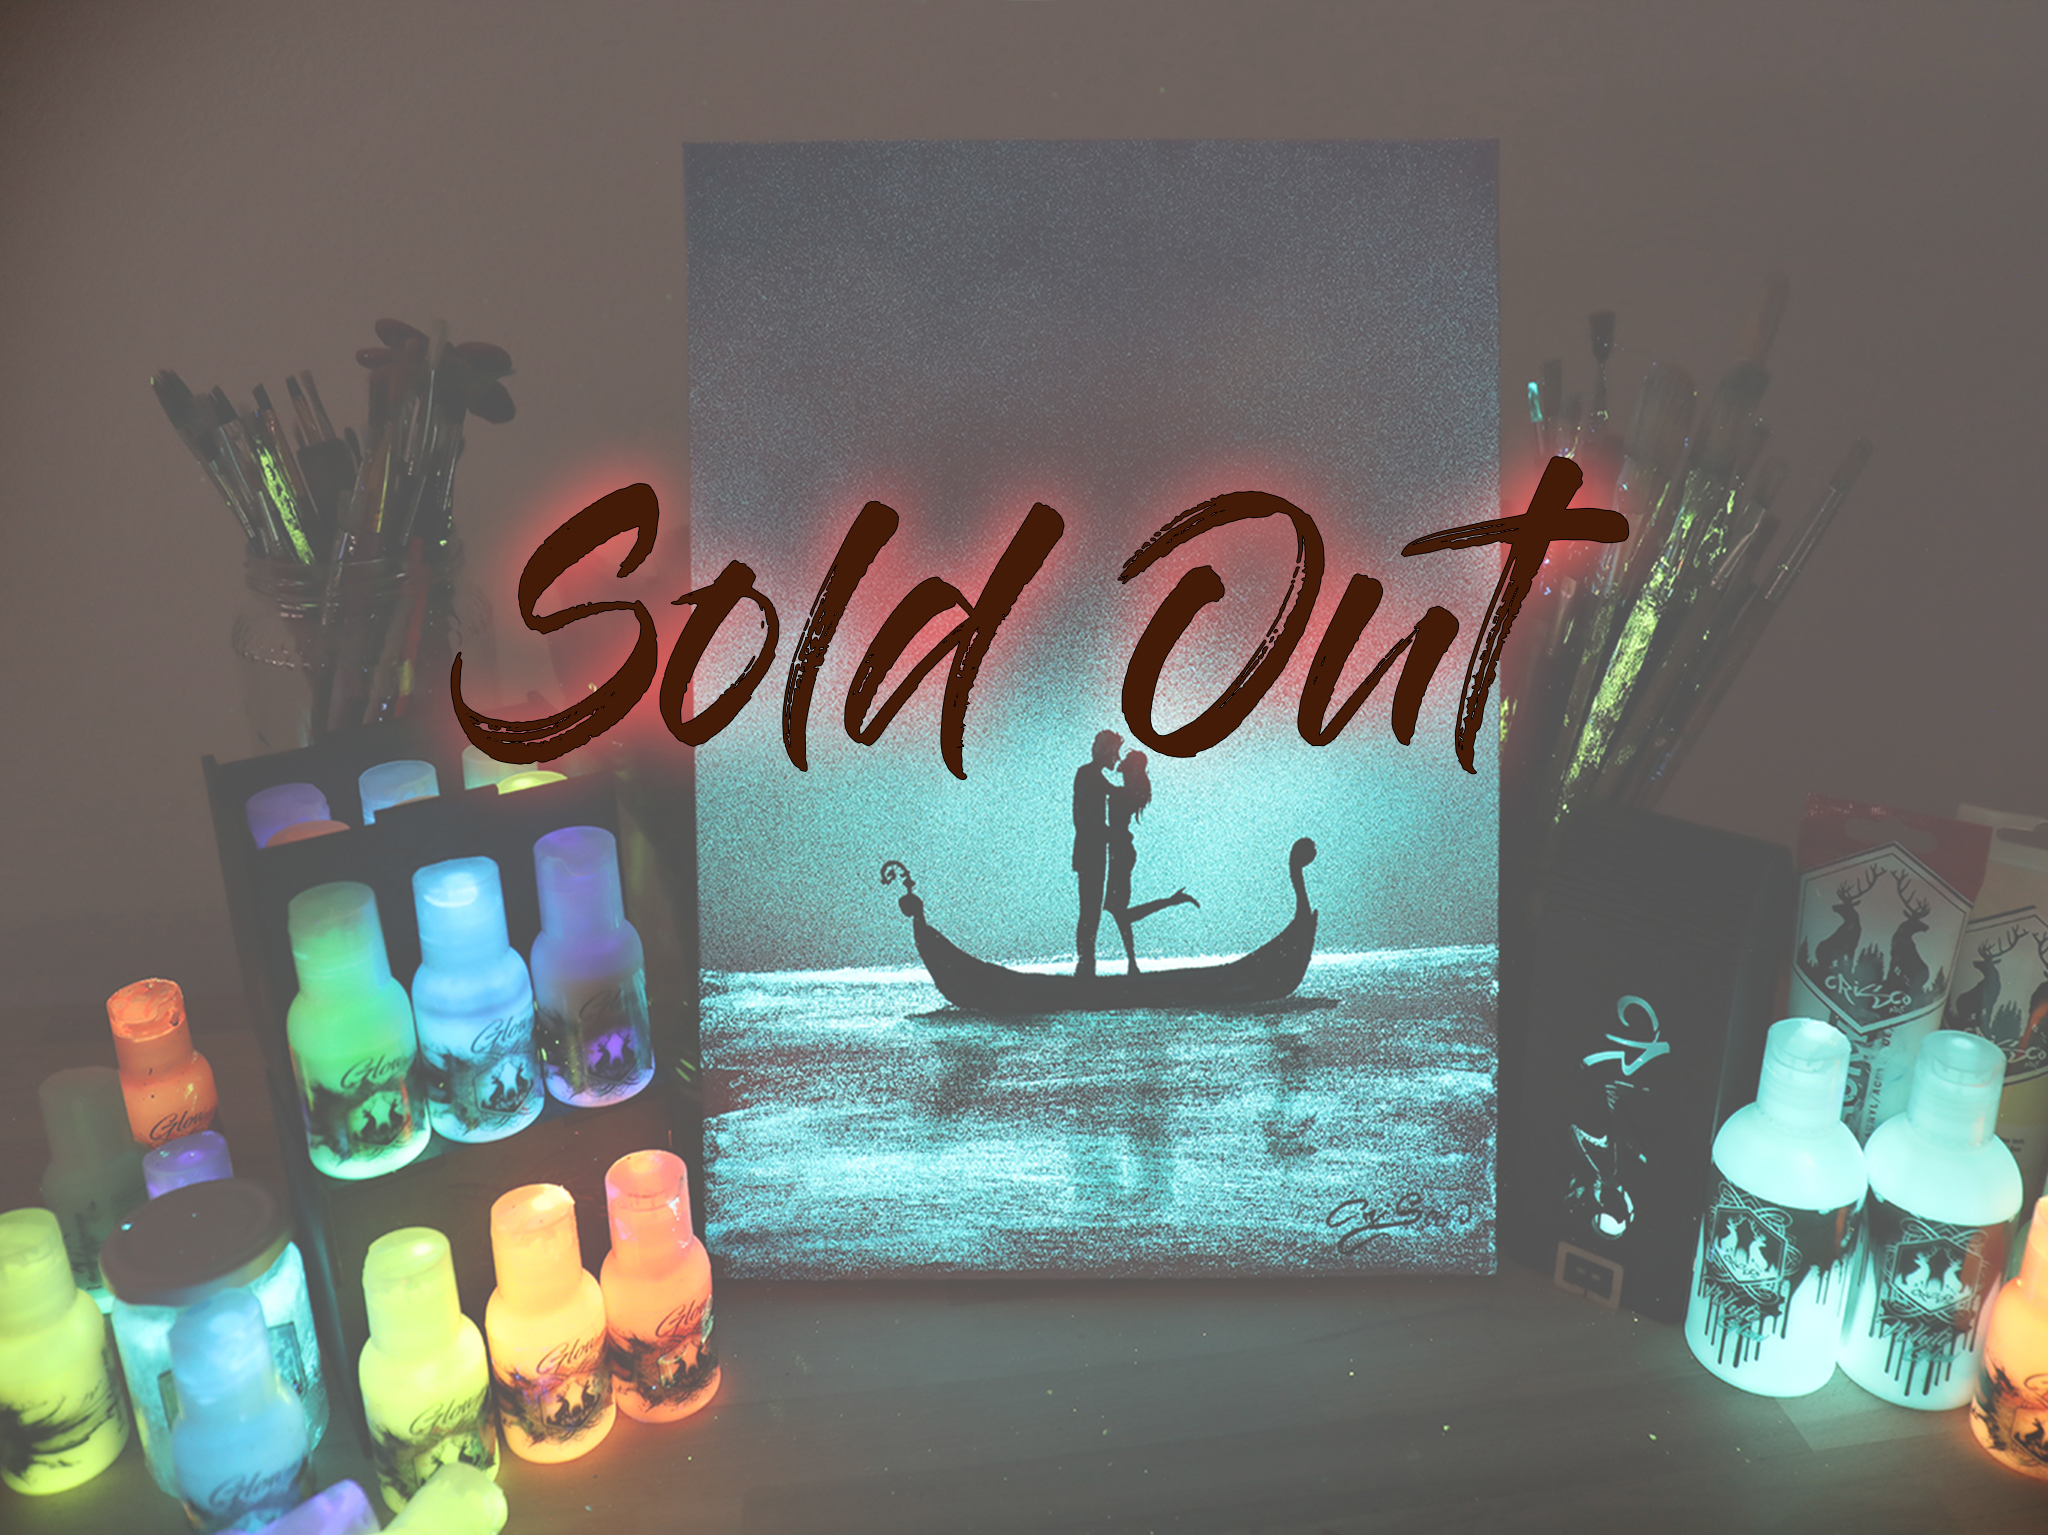 sold out filePASSION